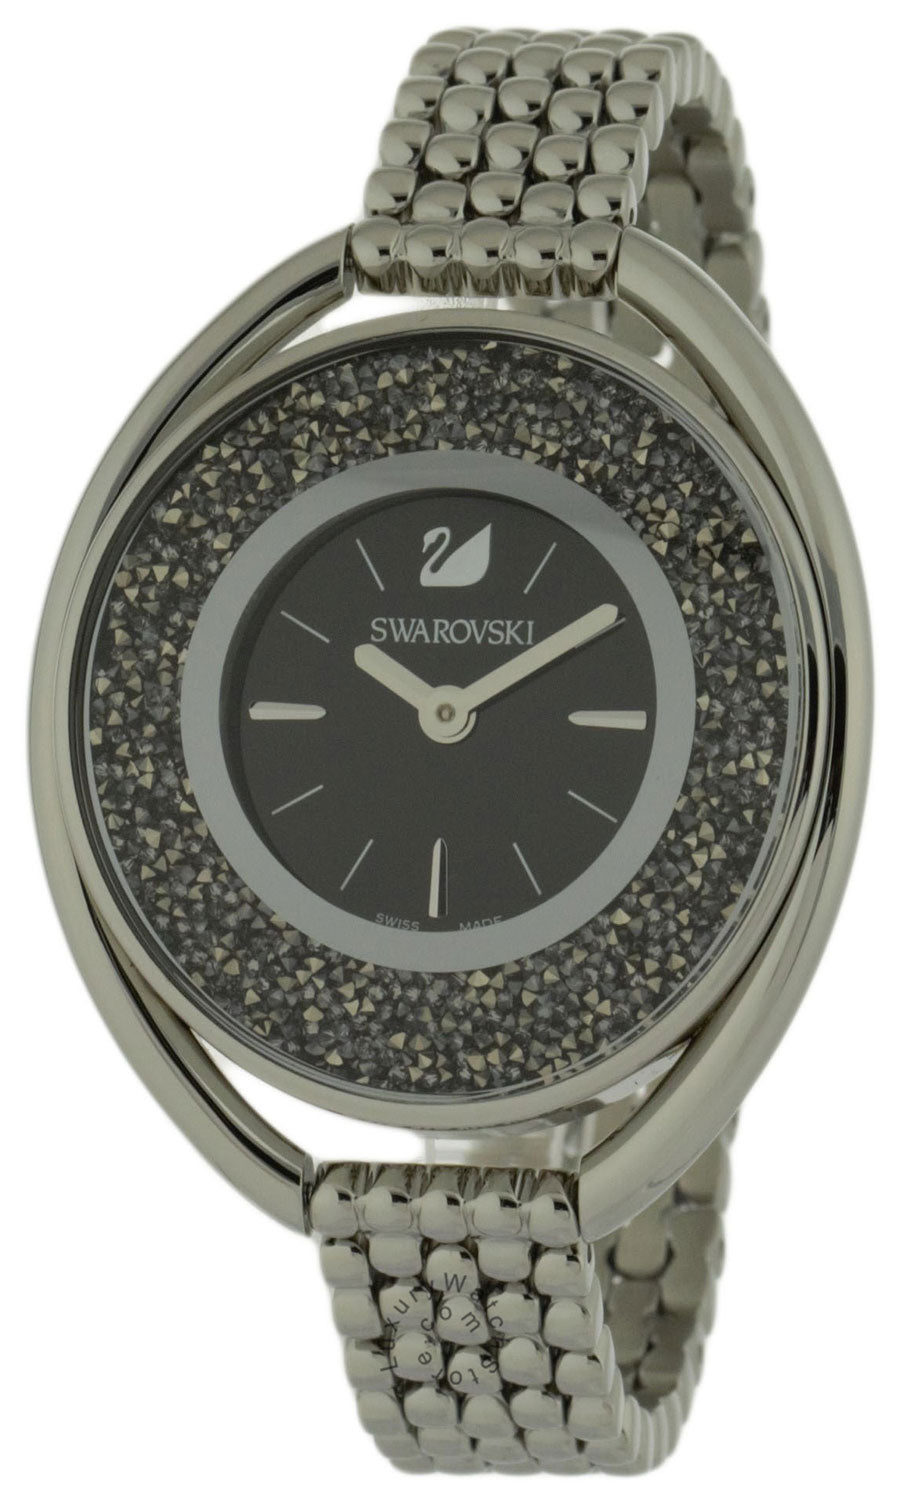 Swarovski Crystalline 1700 Crystals Oval Black Bracelet Watch 5181664